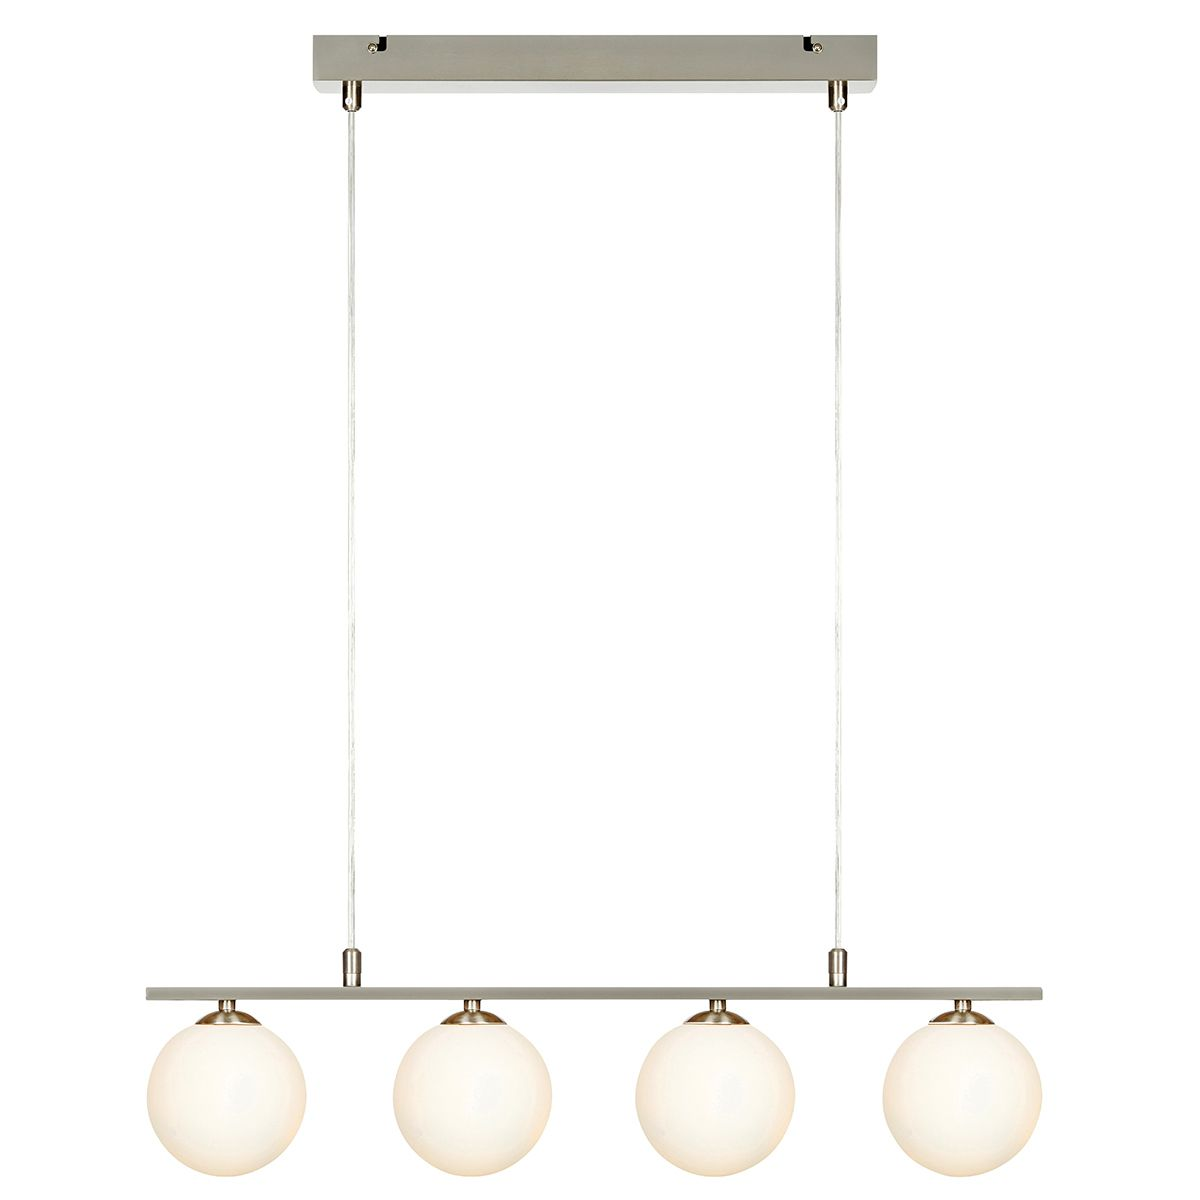 Suspension 4 globes opaque blanc Quattro Markslojd